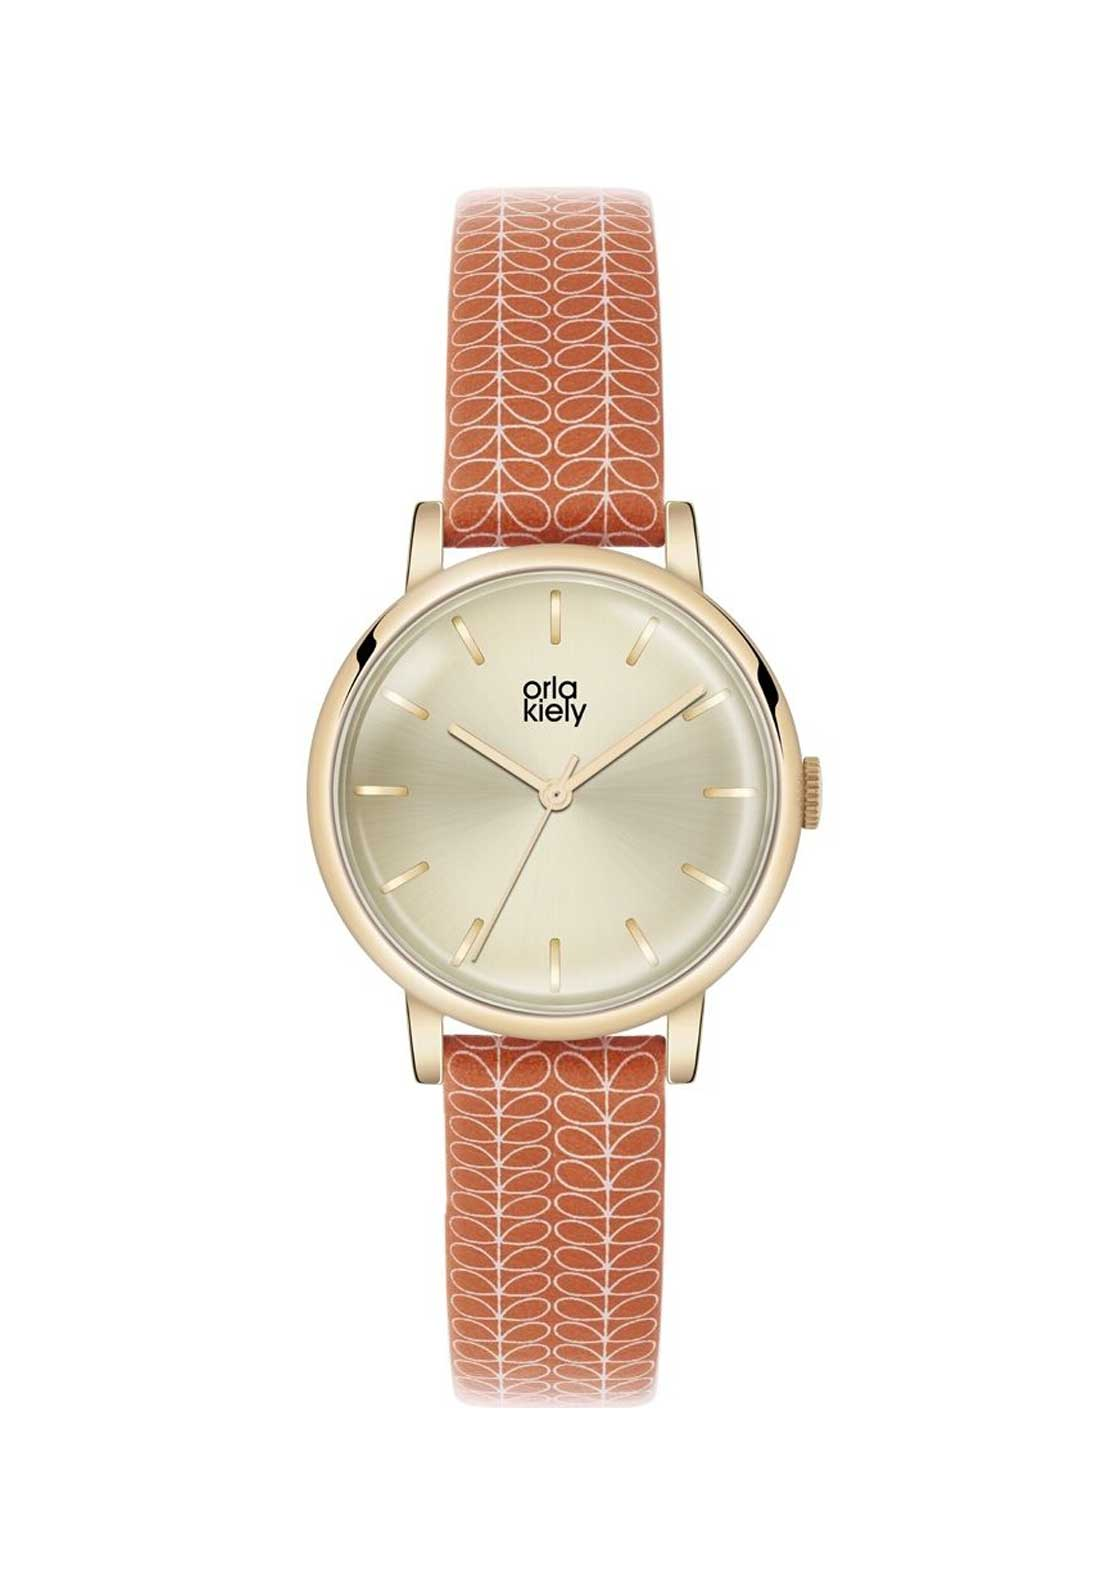 Orla Kiely Time Ladies Gold Watch with Stem Print Red Leather Strap